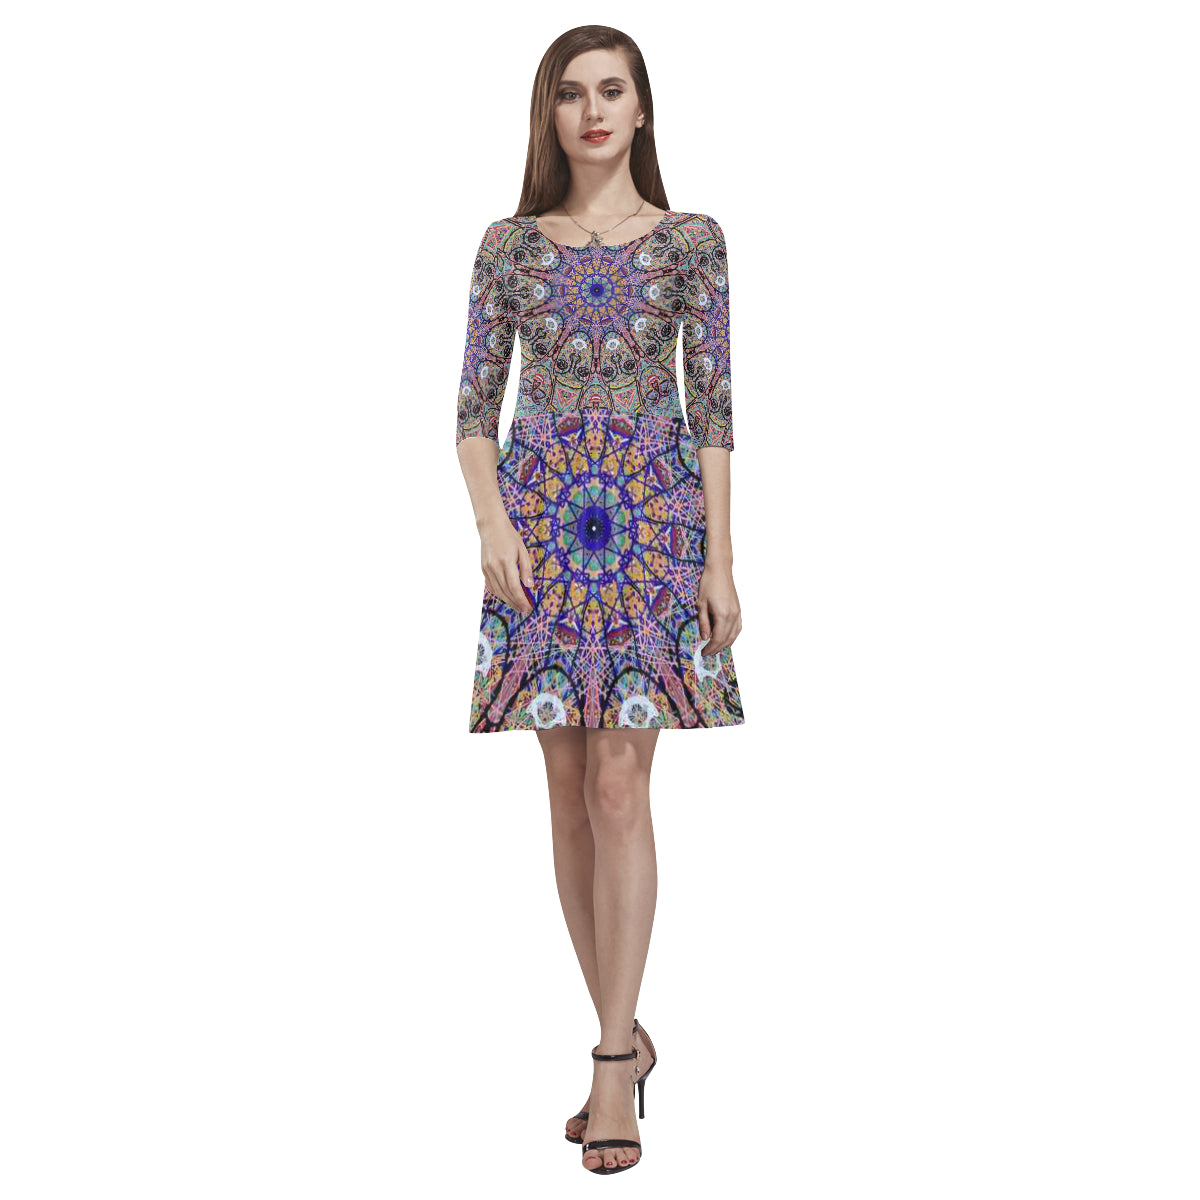 Thleudron Indra Tethys Half-Sleeve Skater Dress(Model D20) - Thleudron